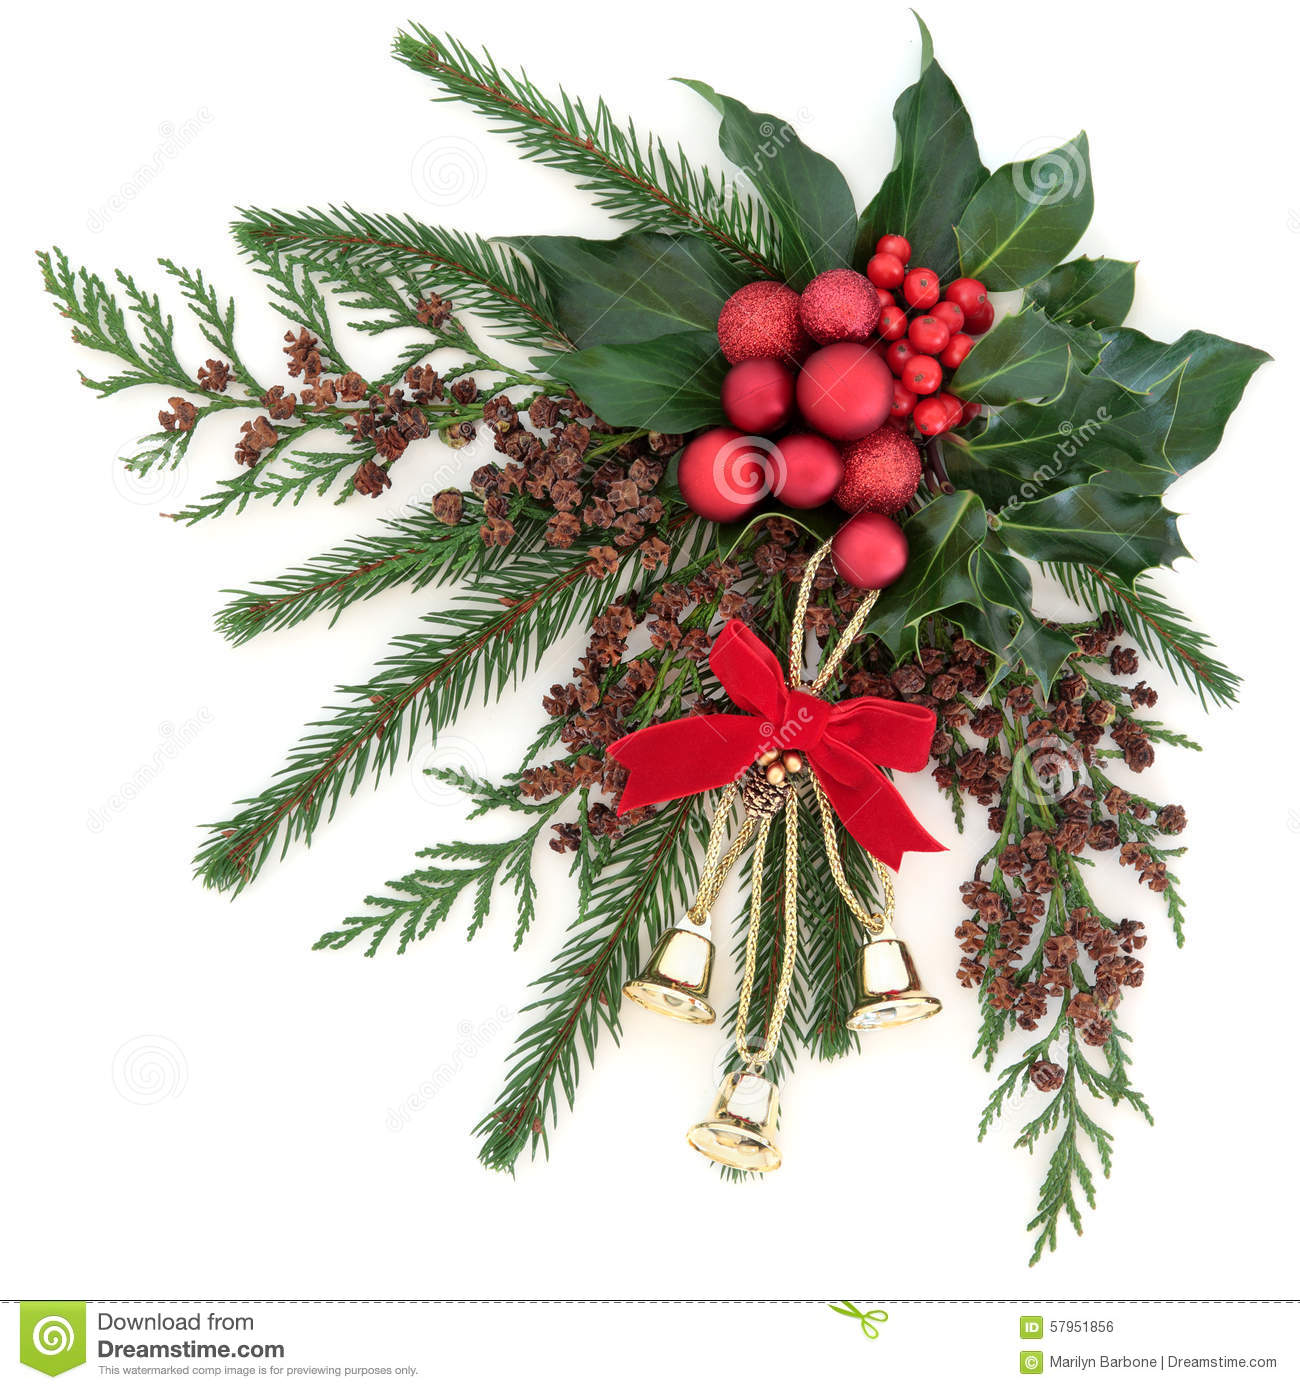 christmas flora with gold bells and red bauble decorations with holly ivy and winter greenery over white background - Christmas Bells Decorations